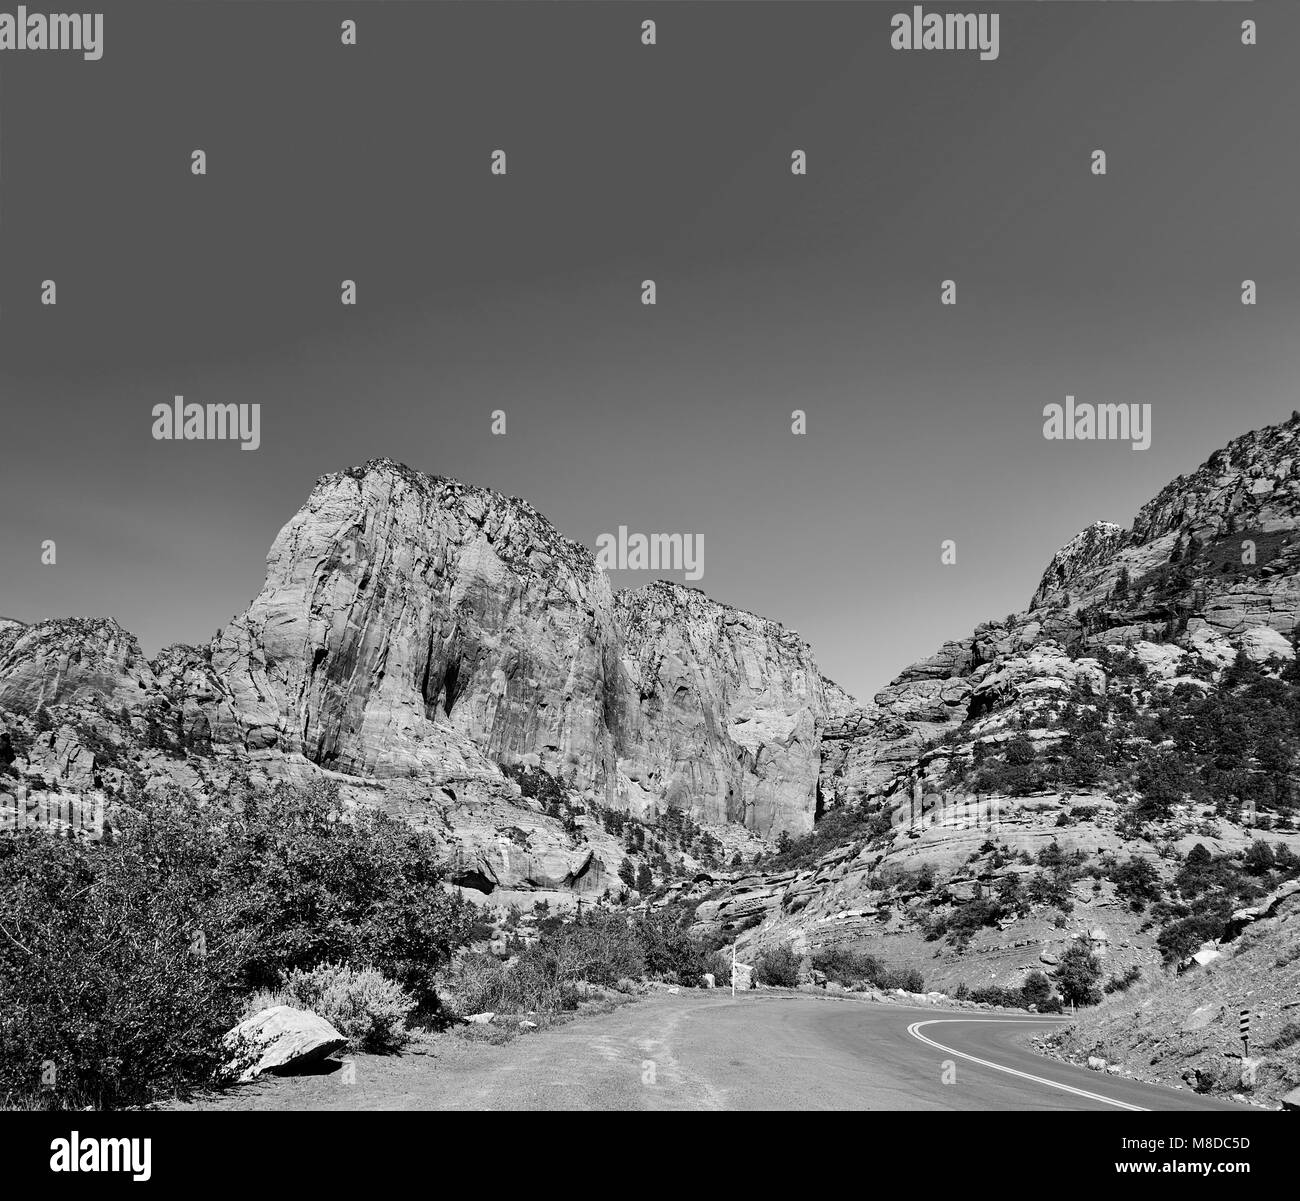 Kolob Canyon in Zion national park, Utah. Mountain peaks, clear sky, trees, road, cliffs. - Stock Image